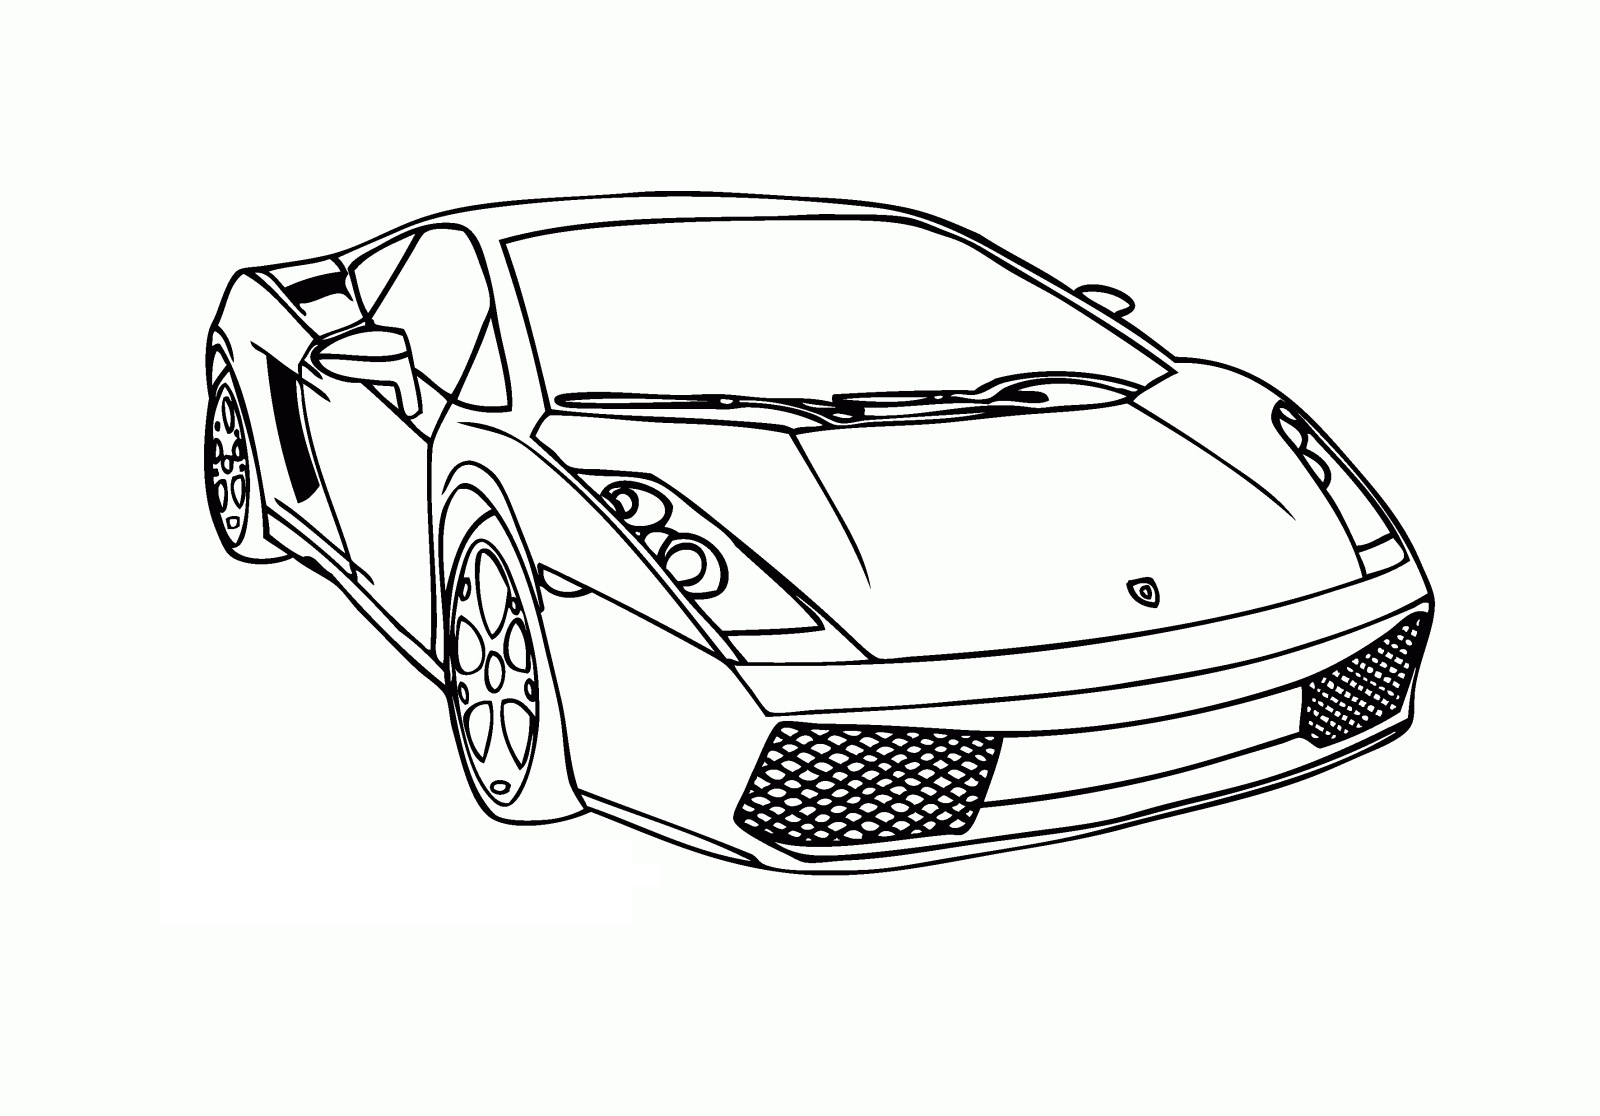 free printable lamborghini coloring for kids frozen kristoff and anna designs opposites coloring pages Lamborghini Coloring Page